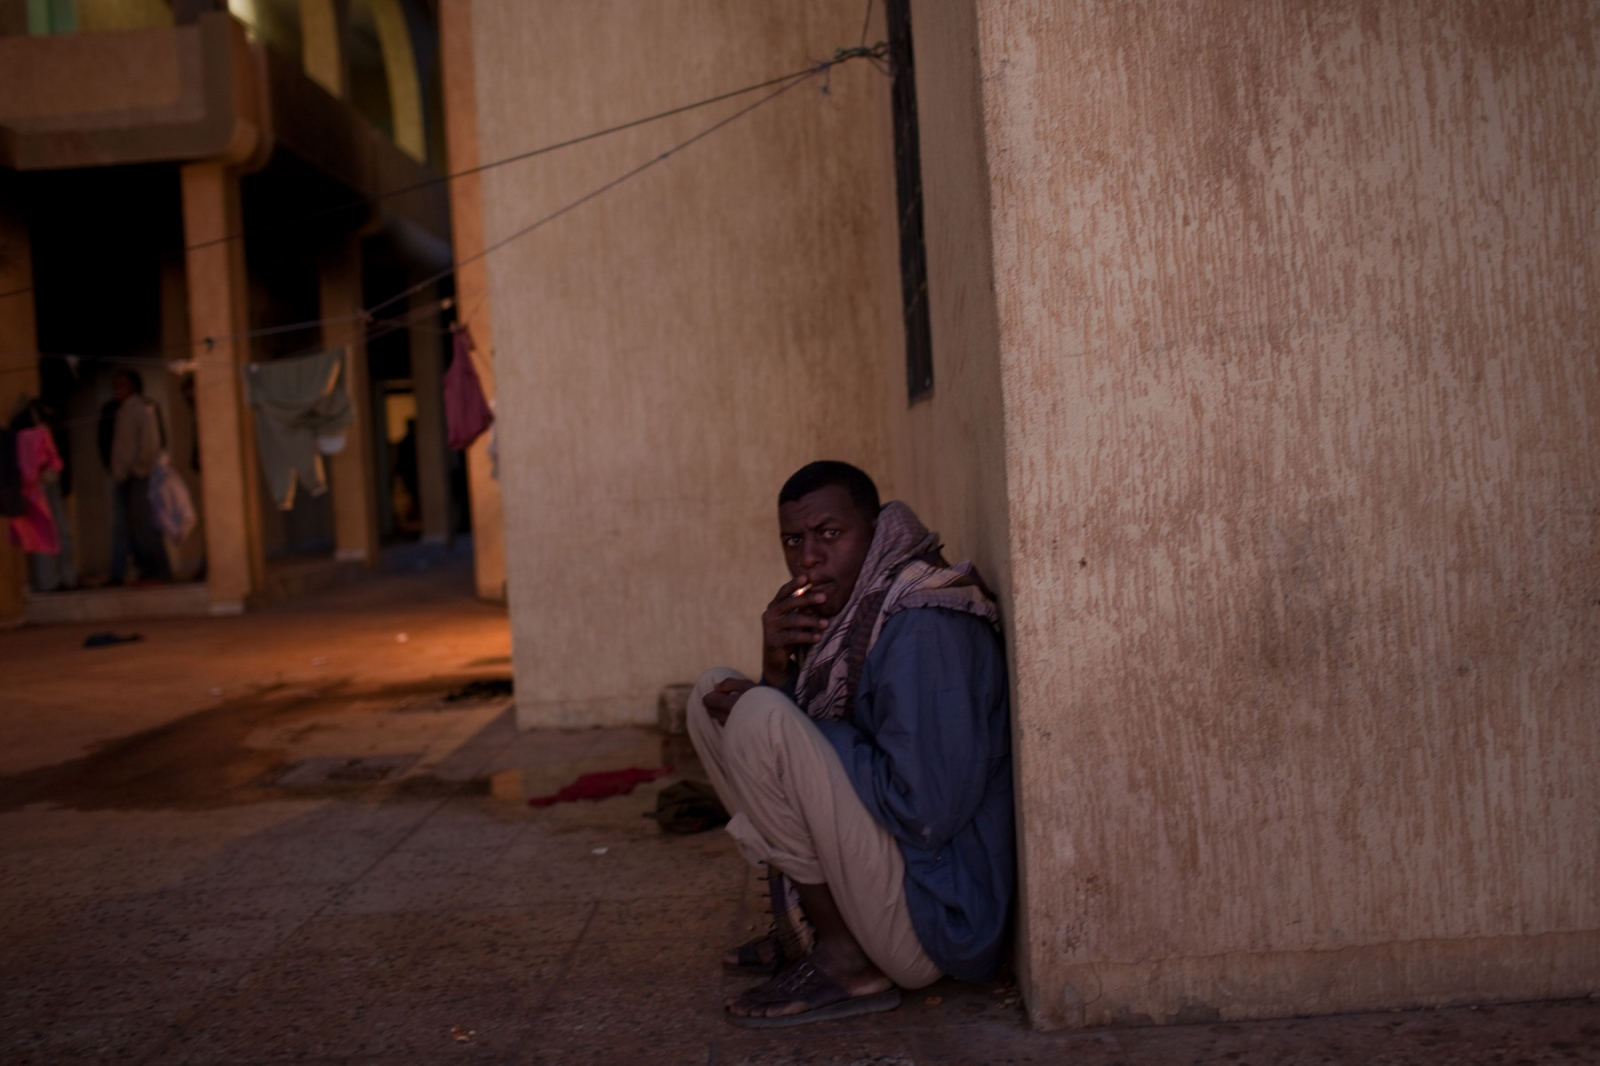 A migrant smokes a cigarette in a detention facility in Kufra, southern Libya on March 7, 2012.